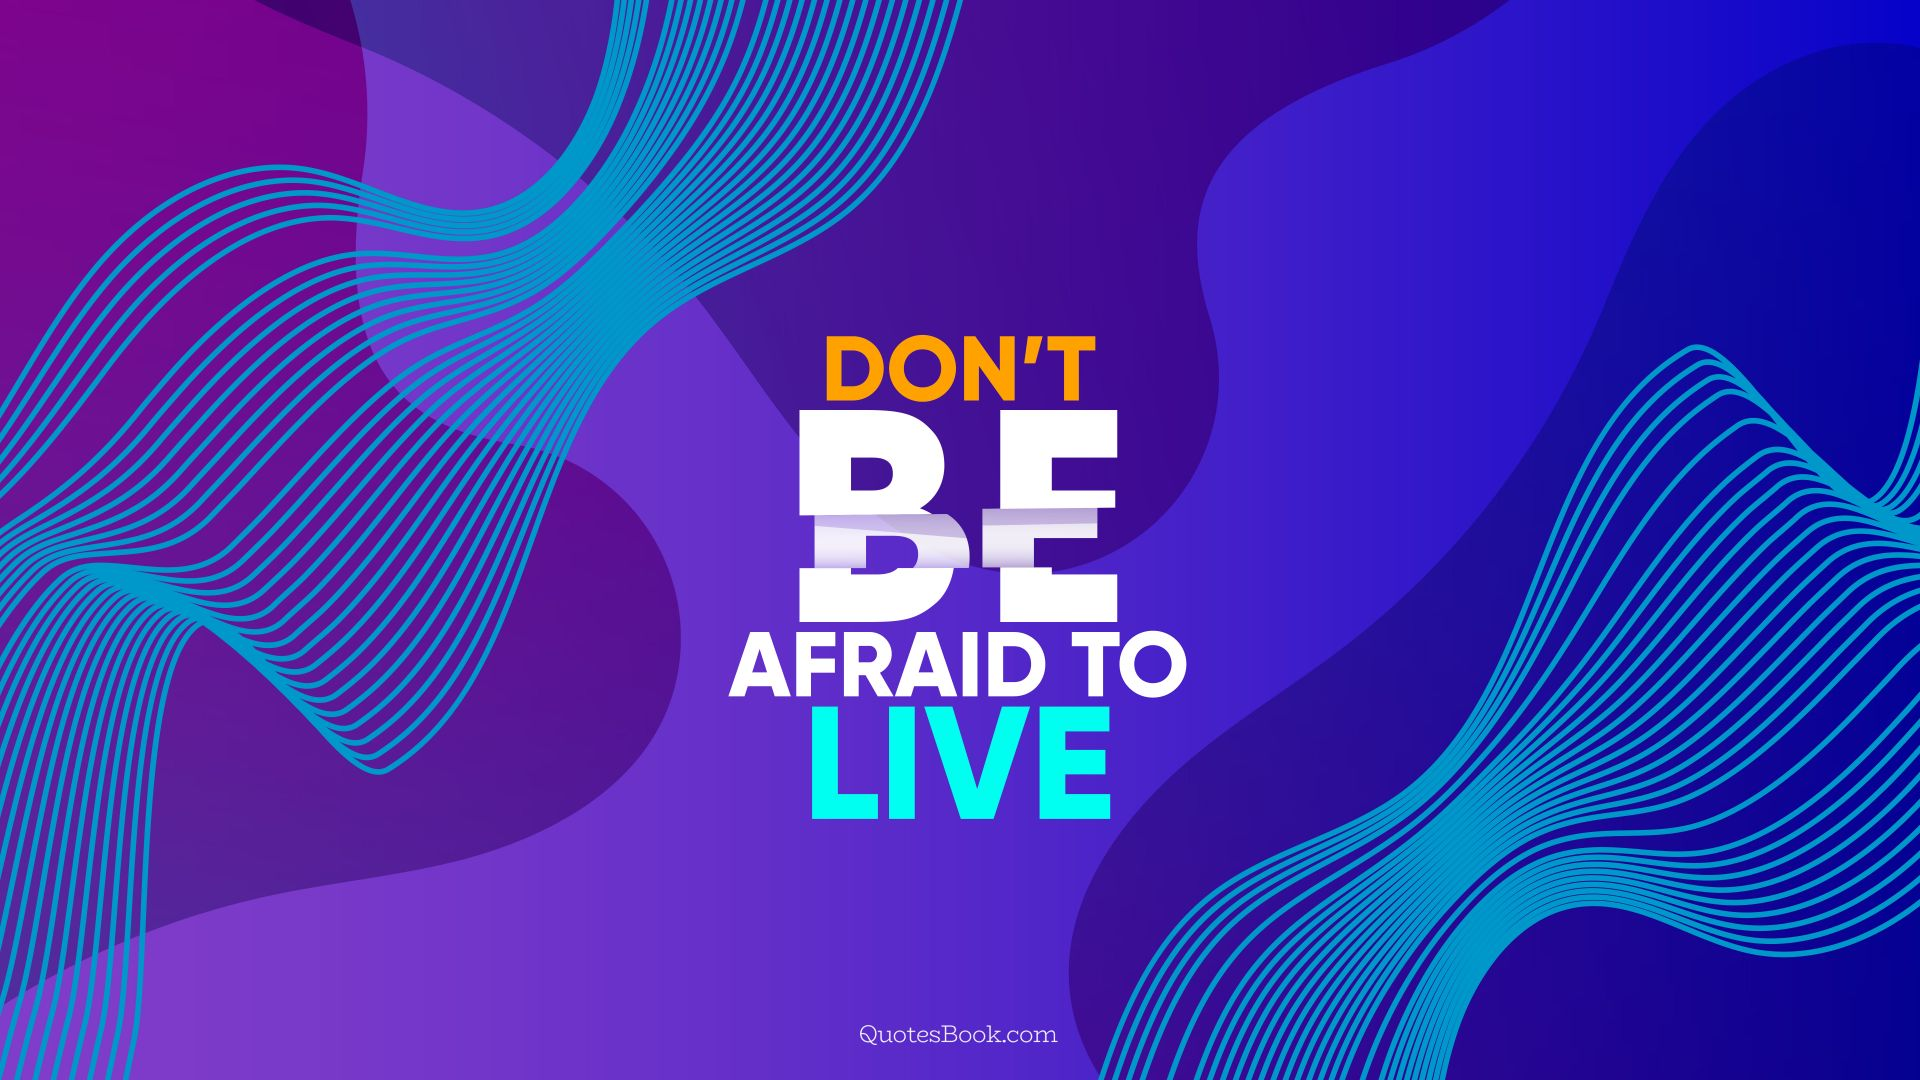 Don't be afraid to live